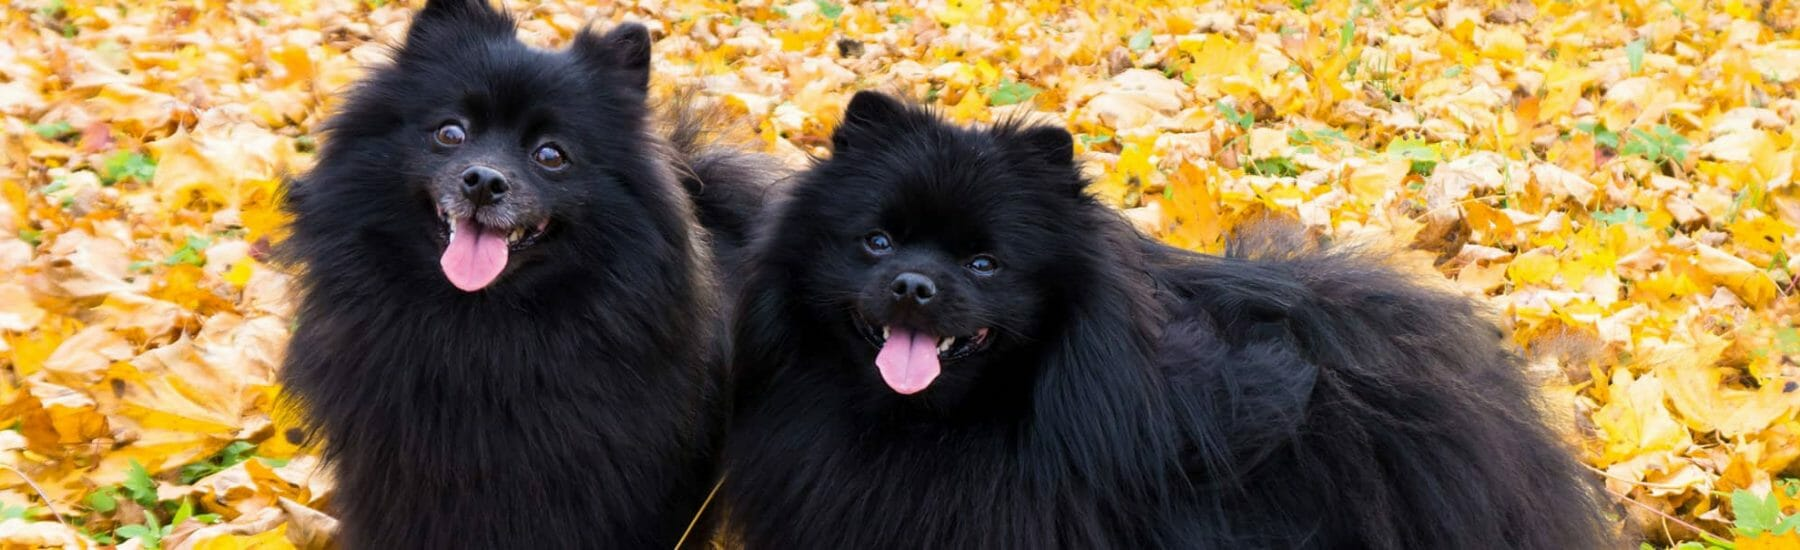 Two black fluffy dogs standing in leaves